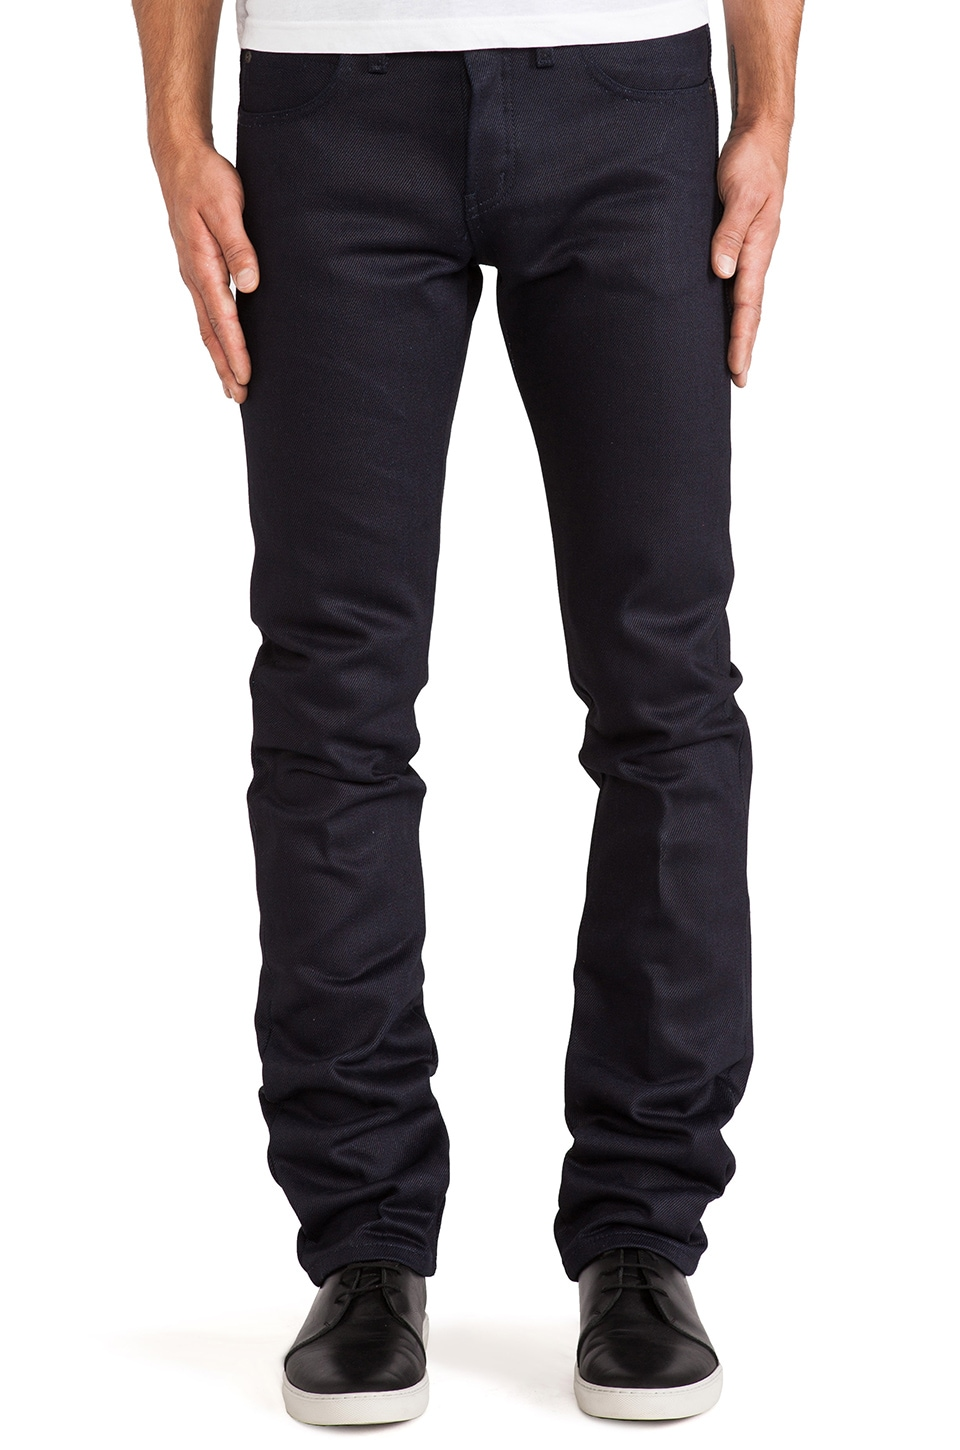 Naked & Famous Denim Skinny Guy 22oz Elephant 4 in Indigo/Black